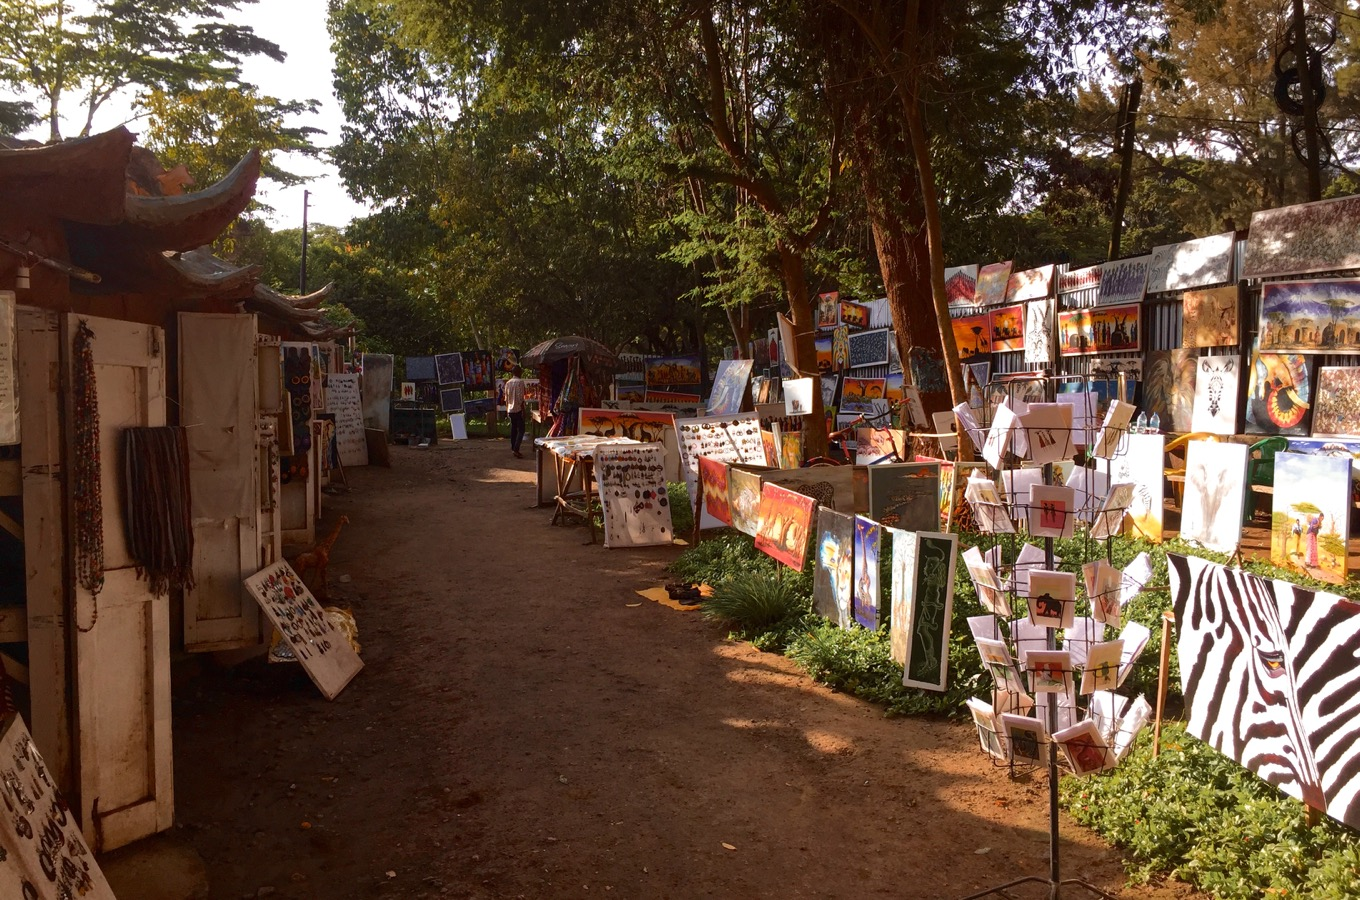 Artists' market in the center of Arusha